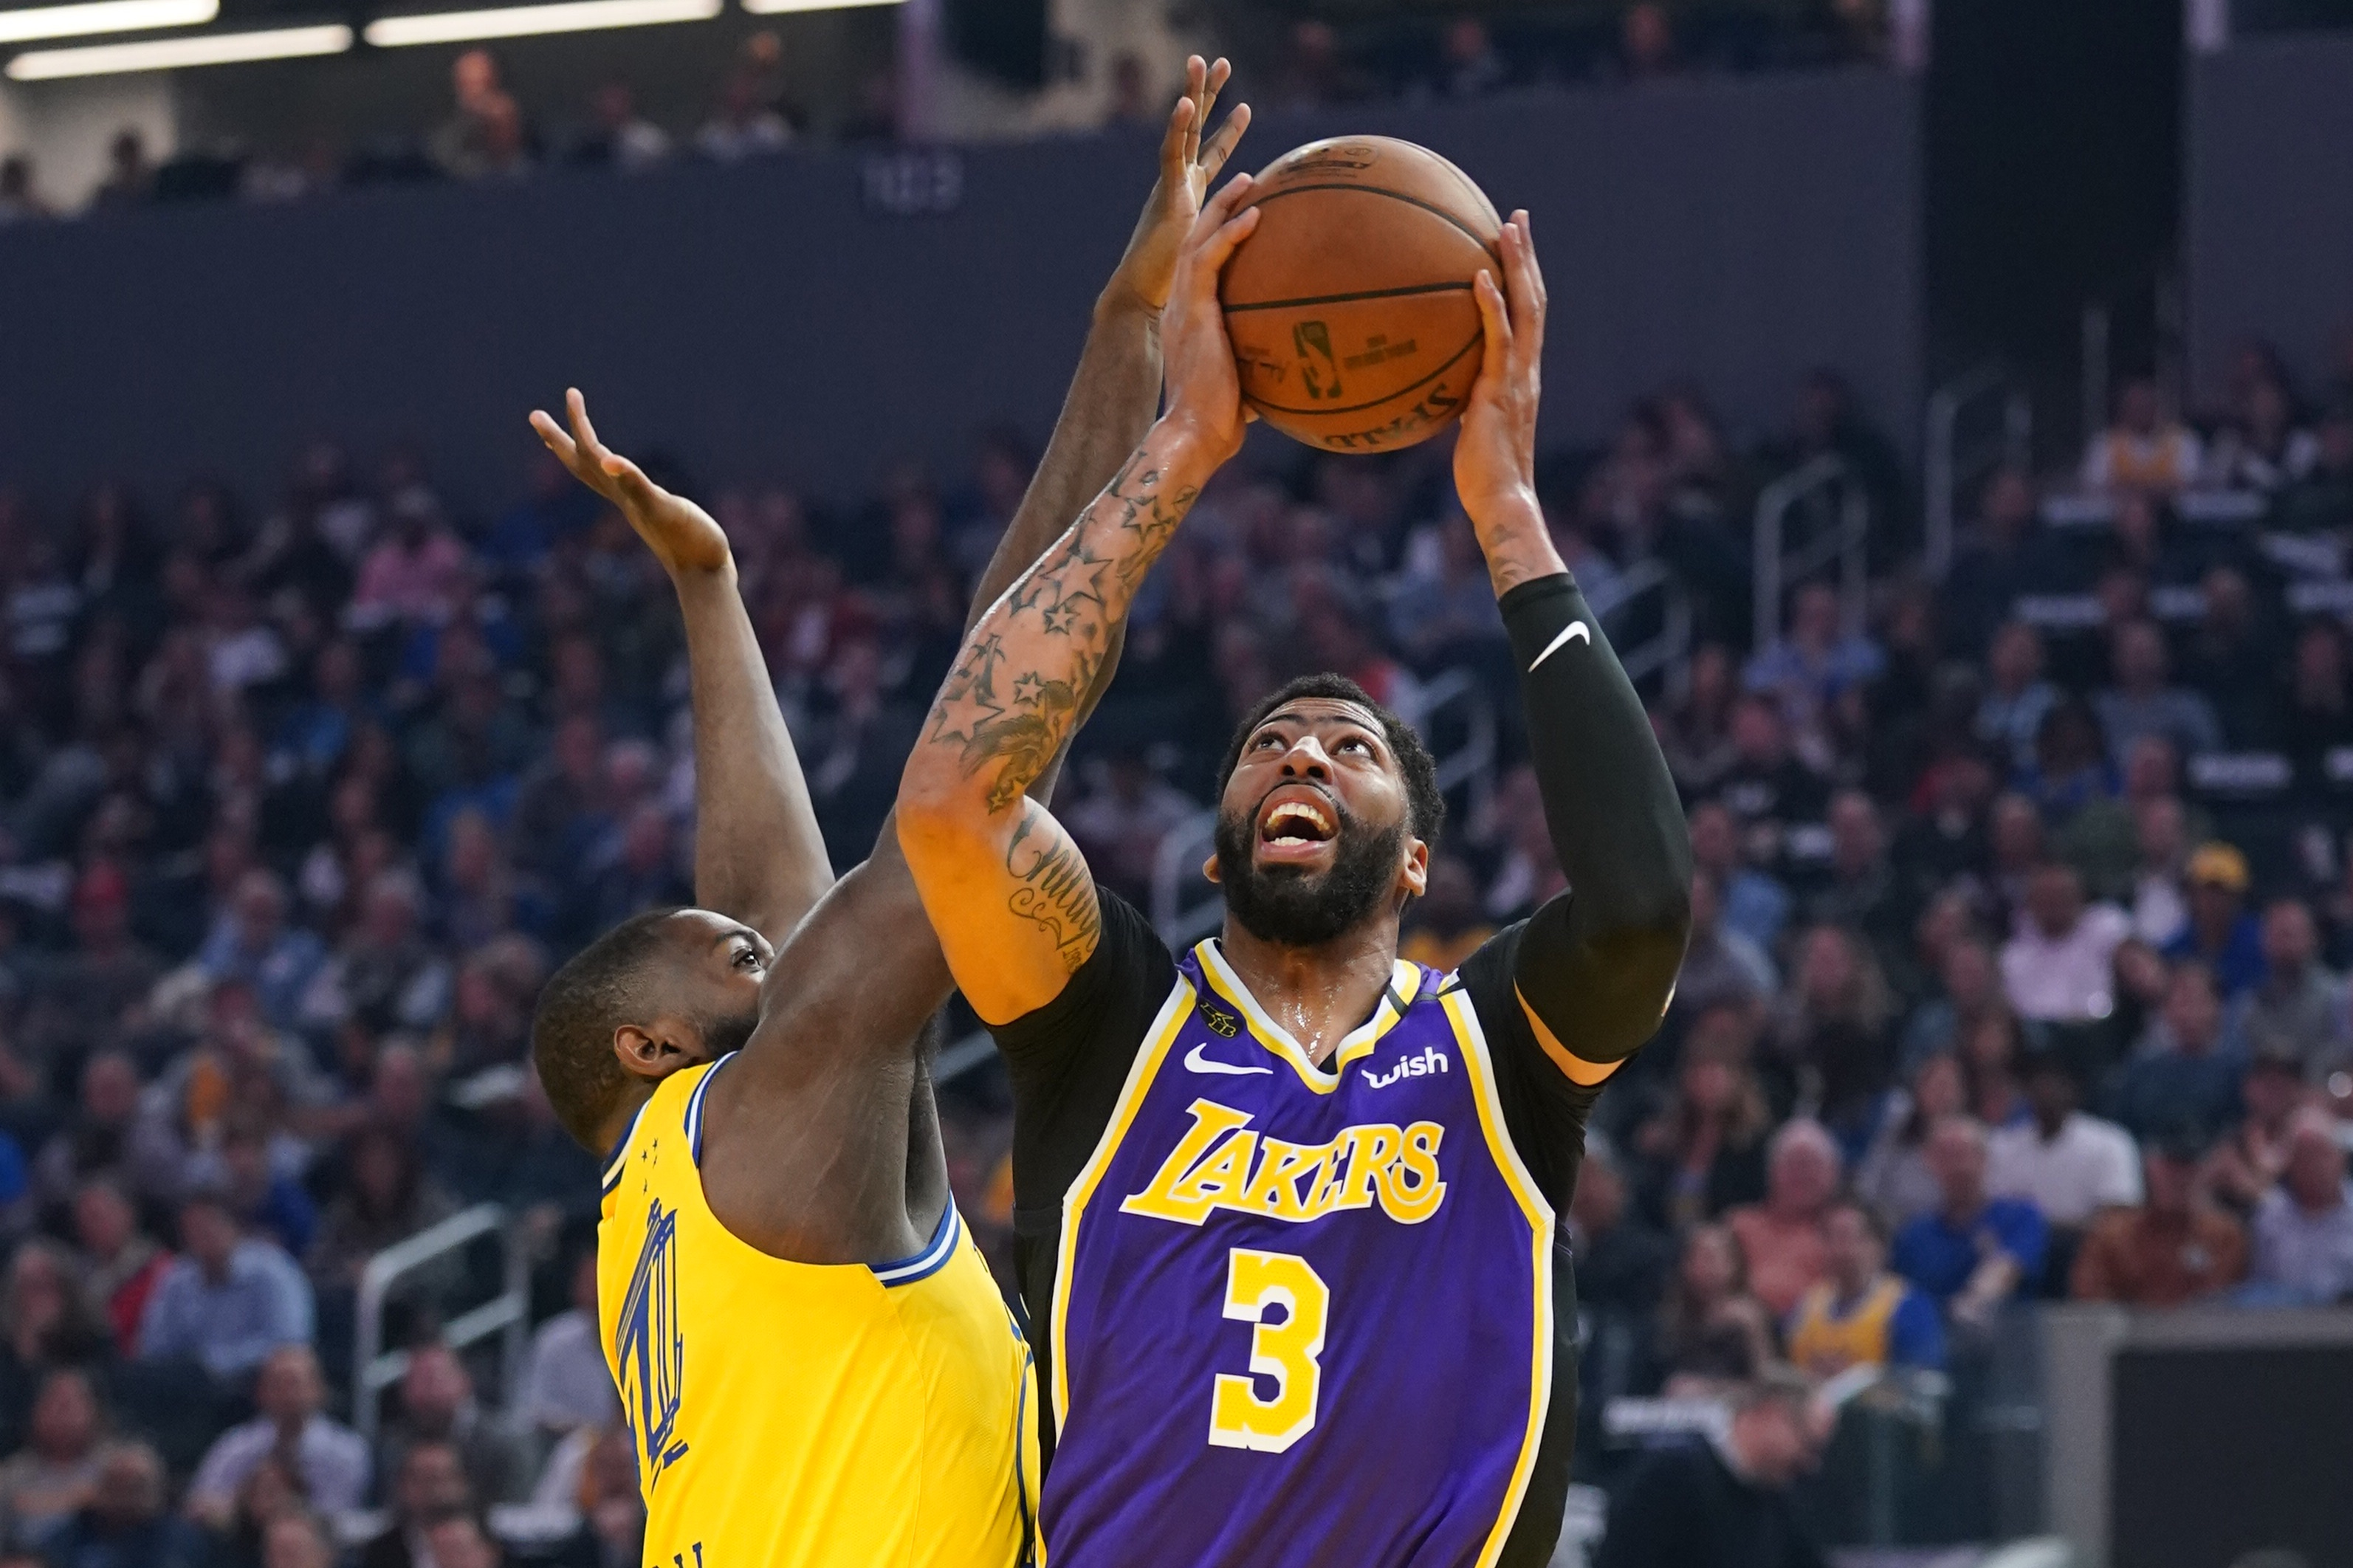 Los Angeles Lakers forward Anthony Davis shoots the basketball against Golden State Warriors forward Eric Paschall during the first quarter at Chase Center.